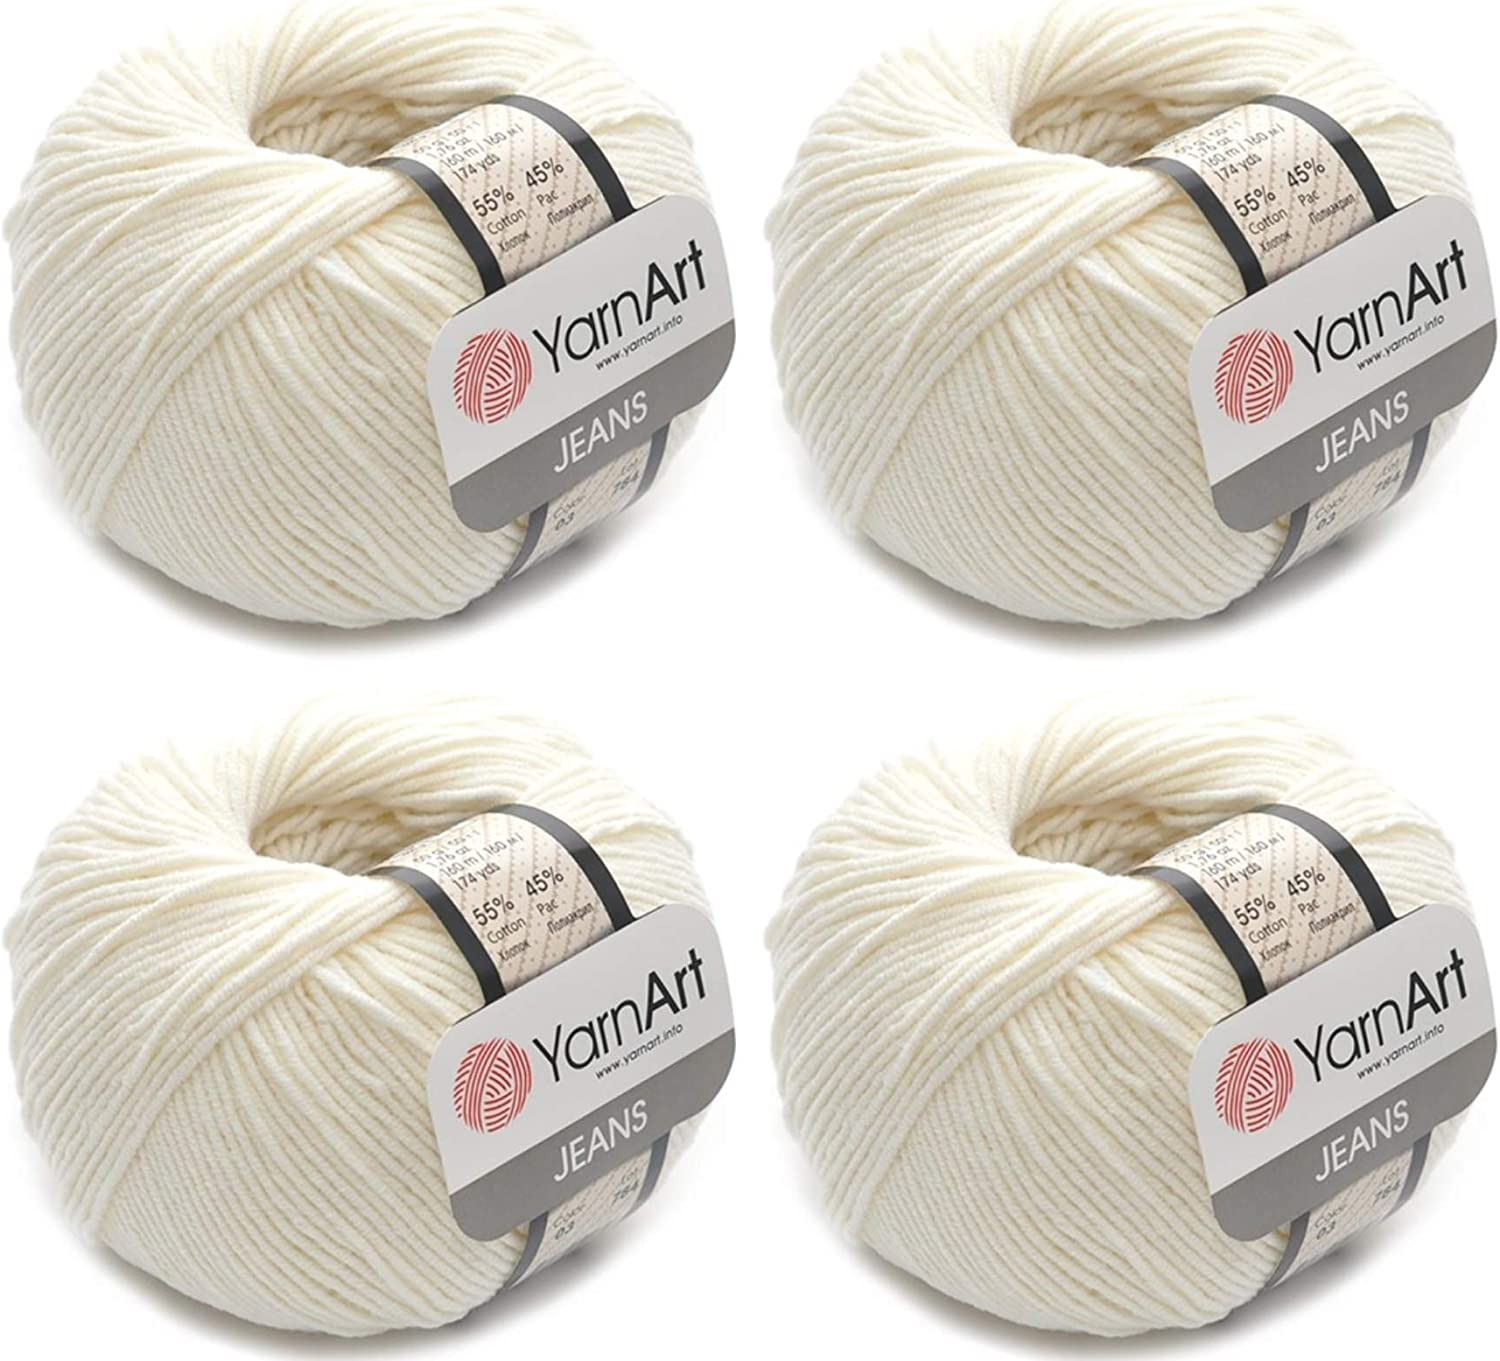 4 Sales results No. 1 Beauty products Skeins YarnArt Jeans 55% Cotton Yarn Blend Thread Acrylic 45%